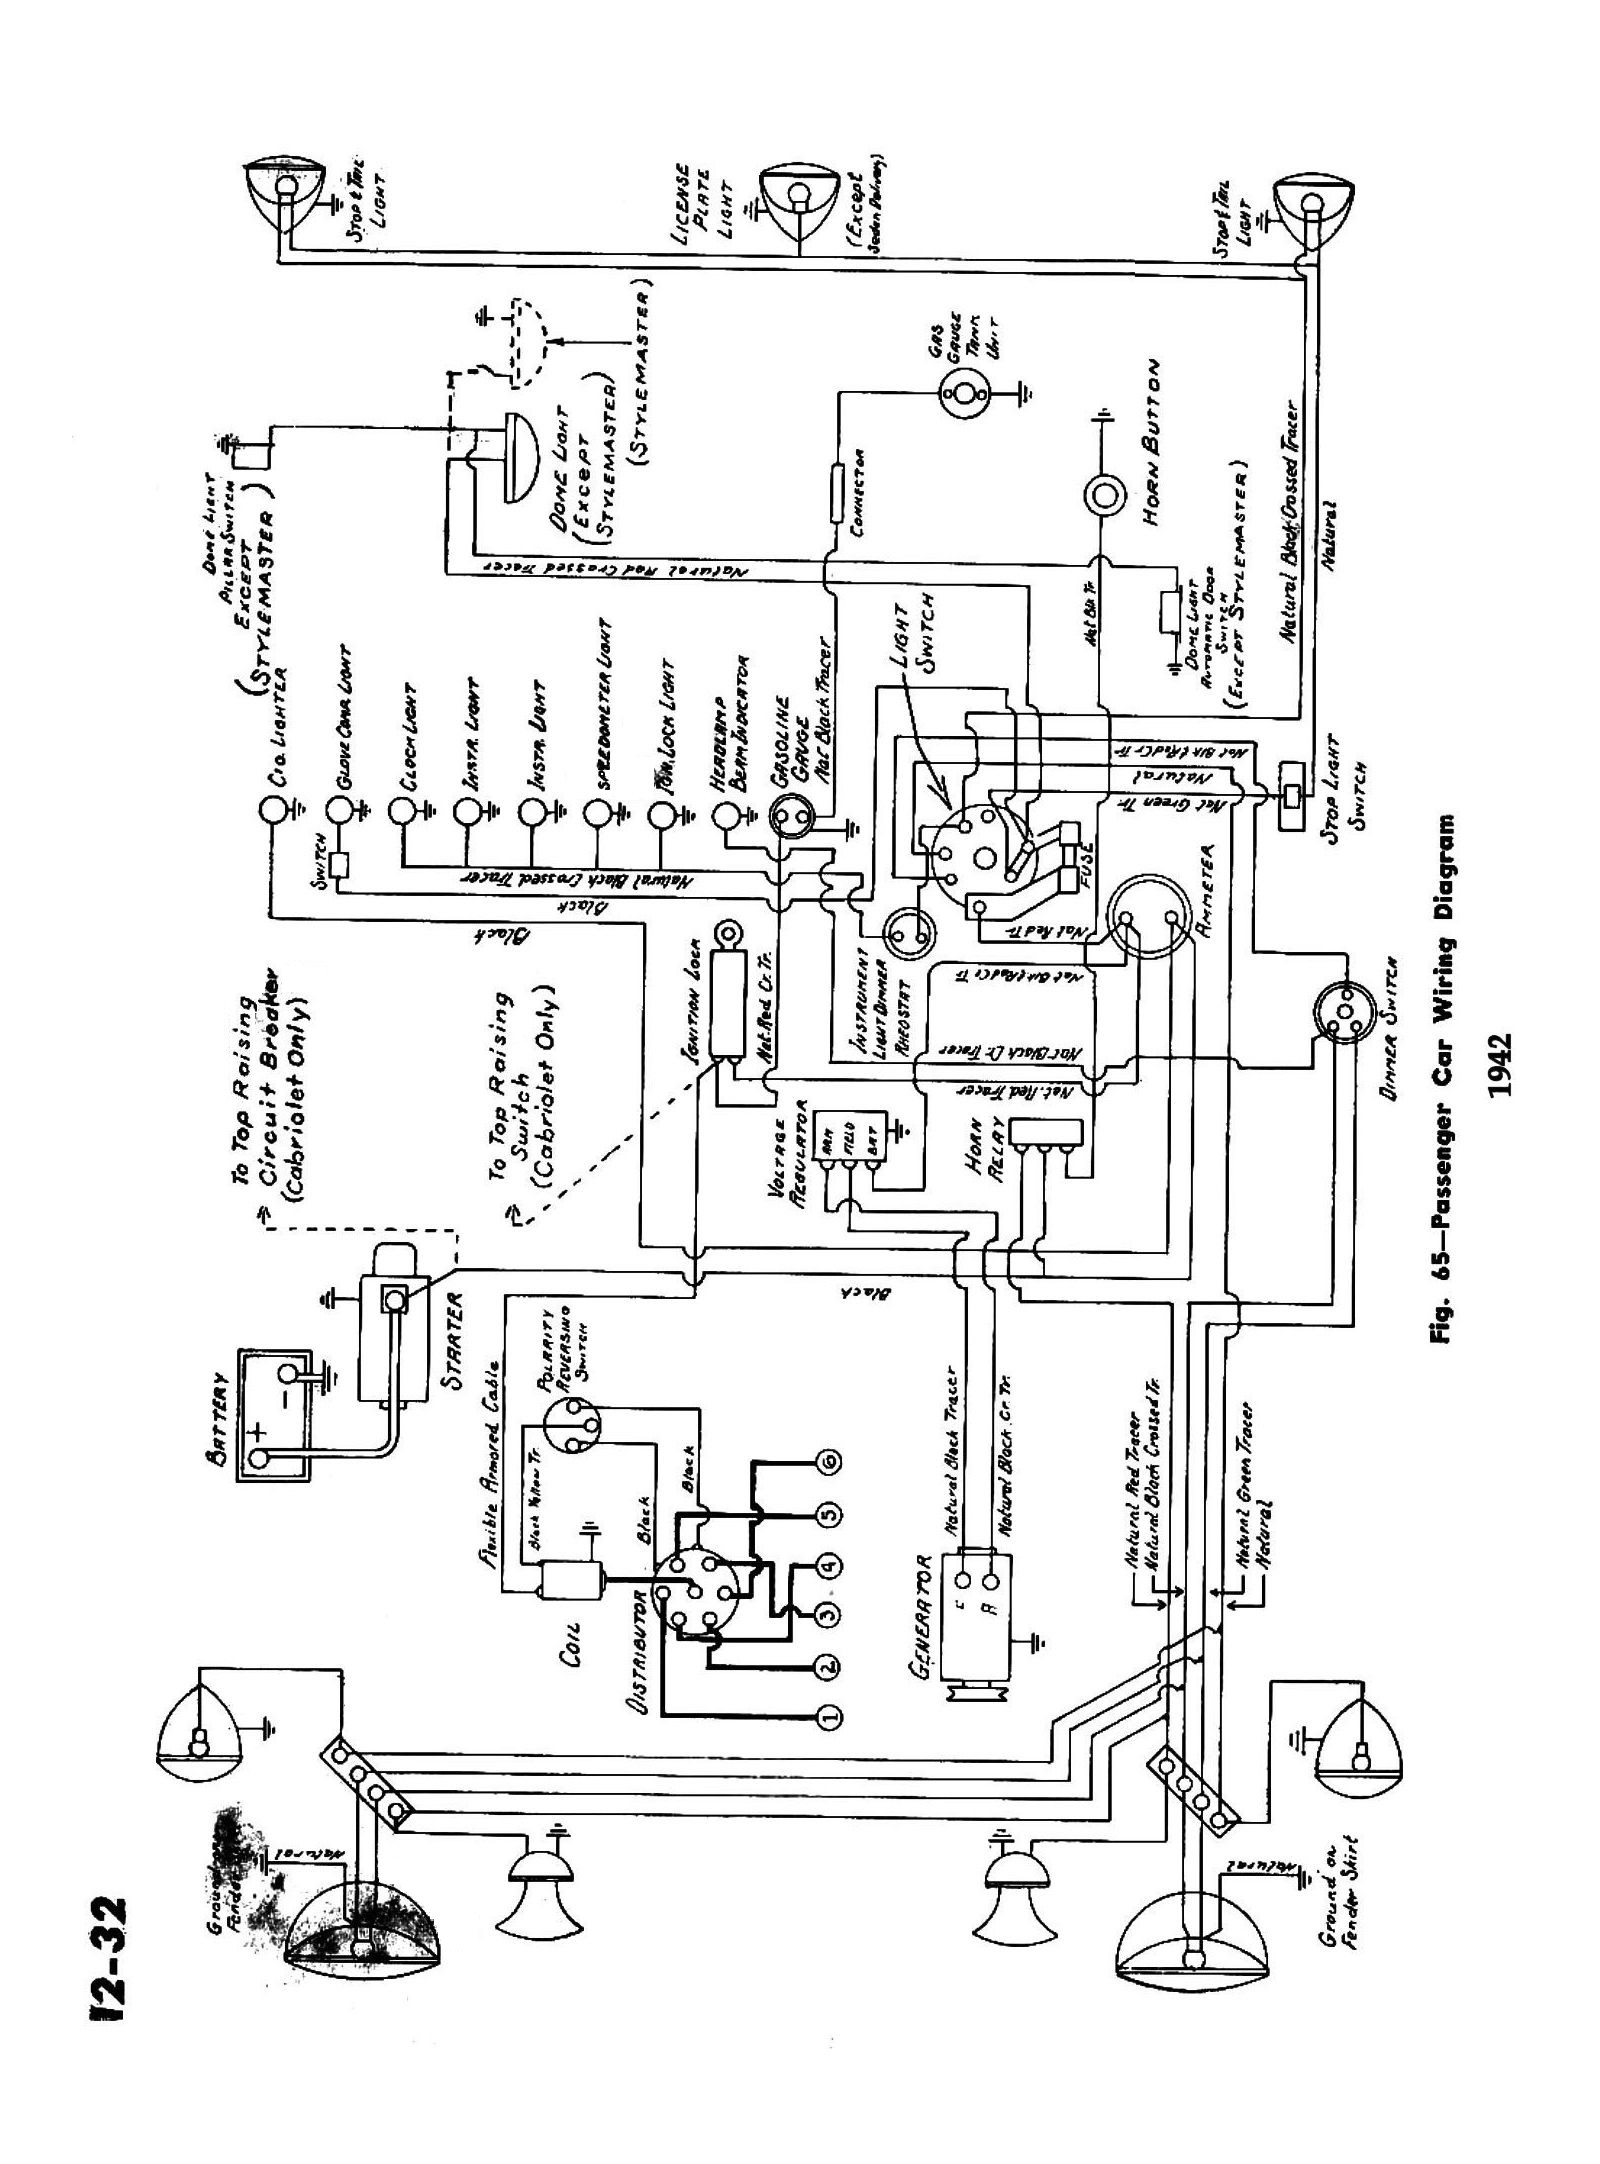 hight resolution of 1942 1942 car wiring 1942 passenger car wiring